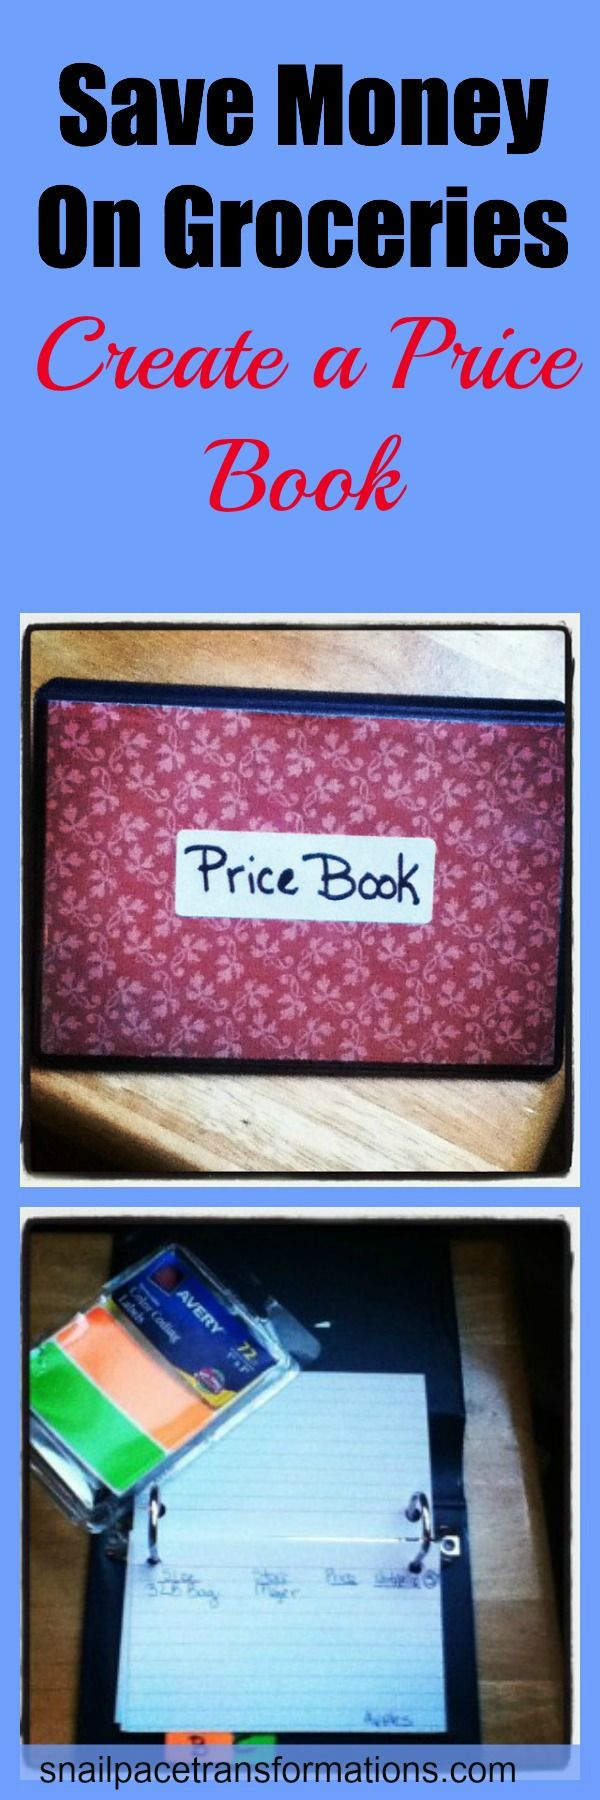 How to set up a small simple price book that will fit in your purse and help you save $$ at the grocery store.